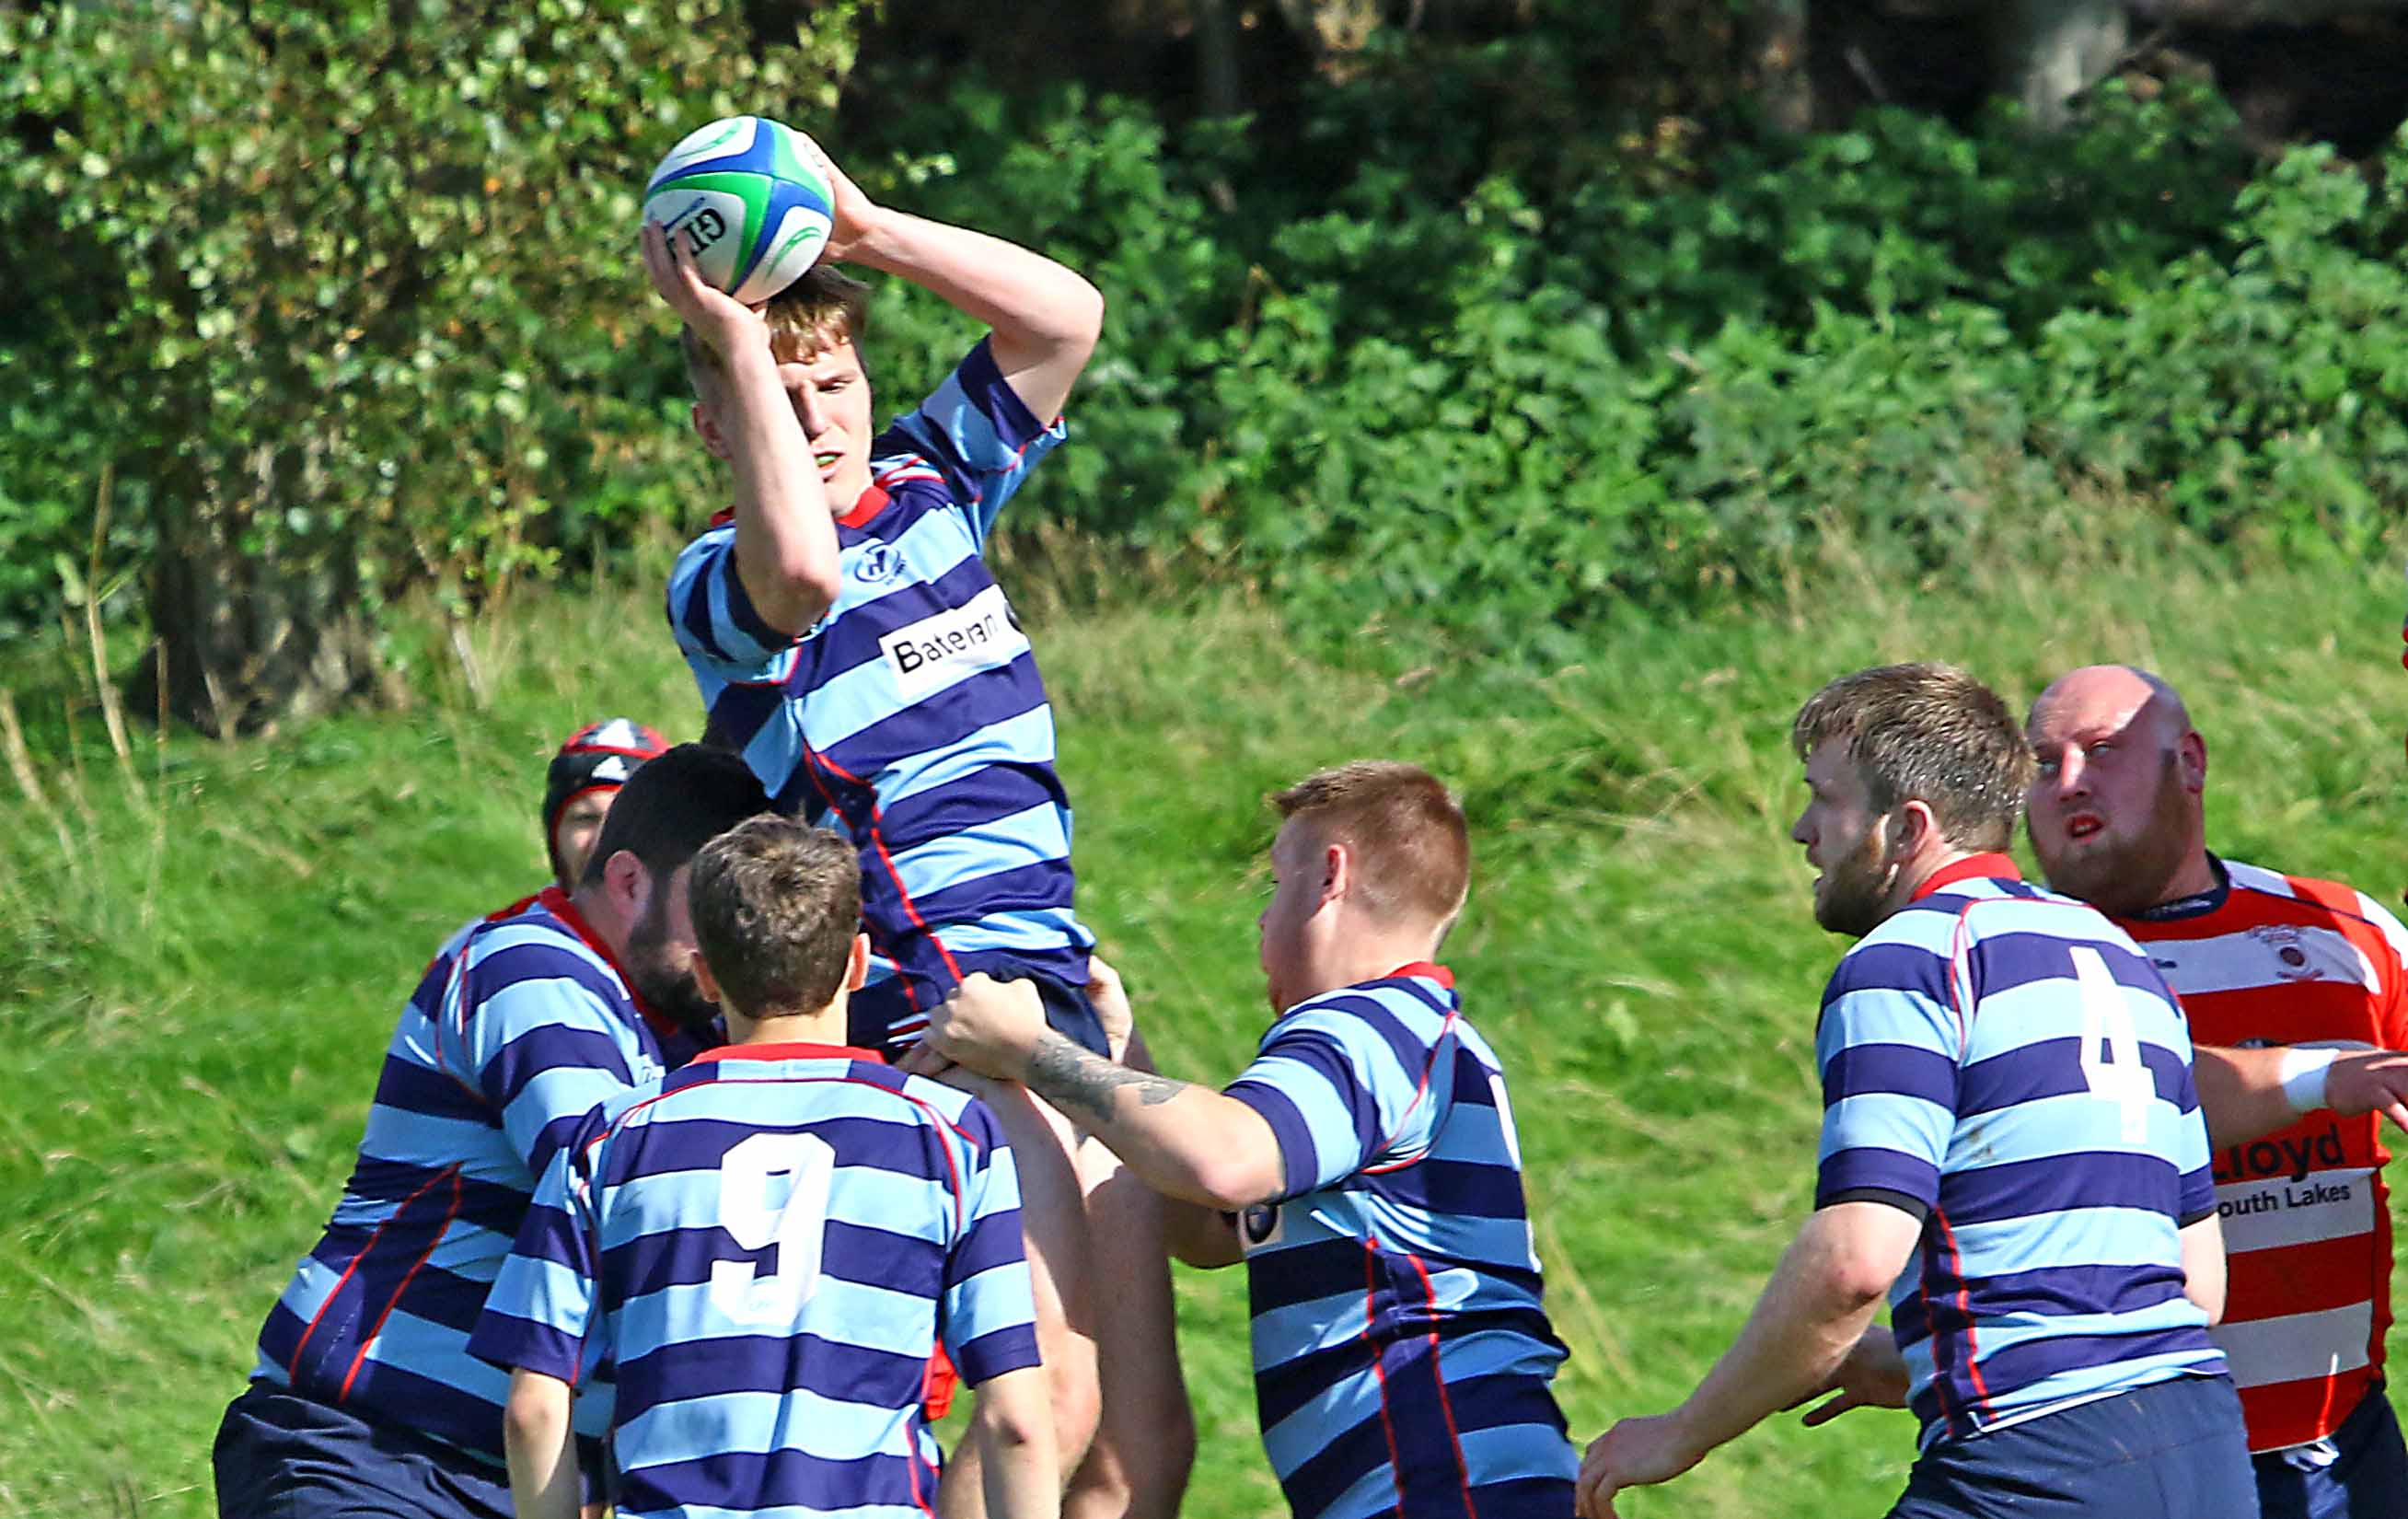 Vale of Lune 2nd XV 53pts v 16pts Birkenhead Park 2nd XV